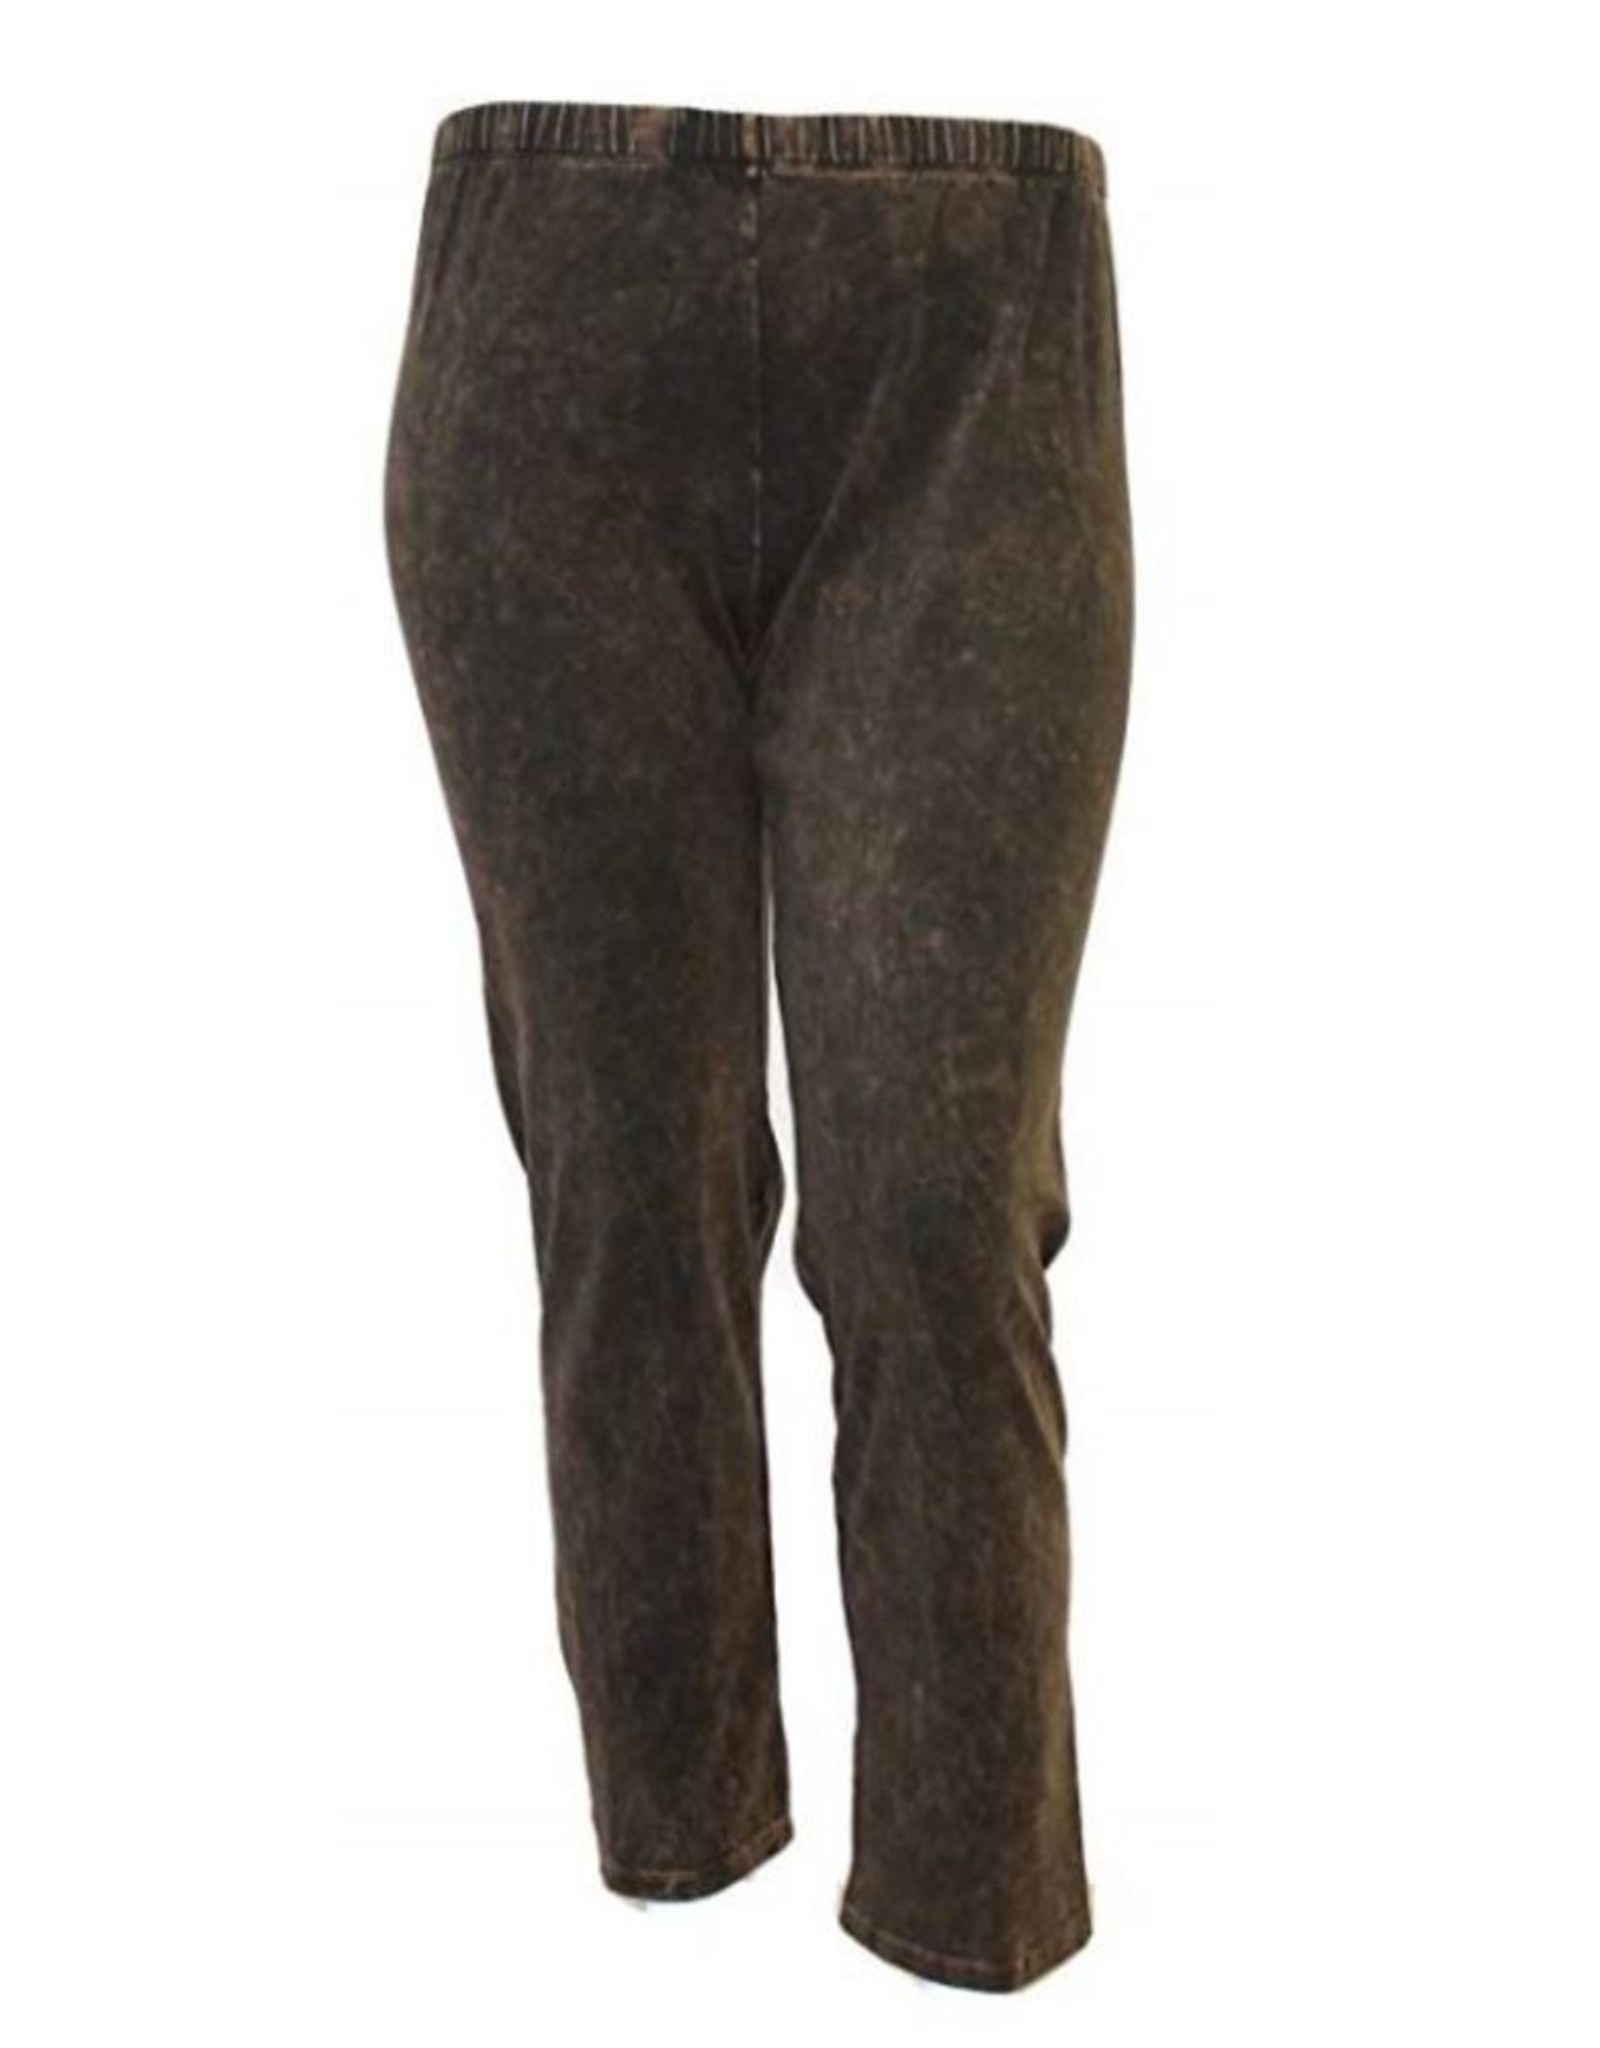 Jess and Jane M31 Mineral Washed Ankle Legging